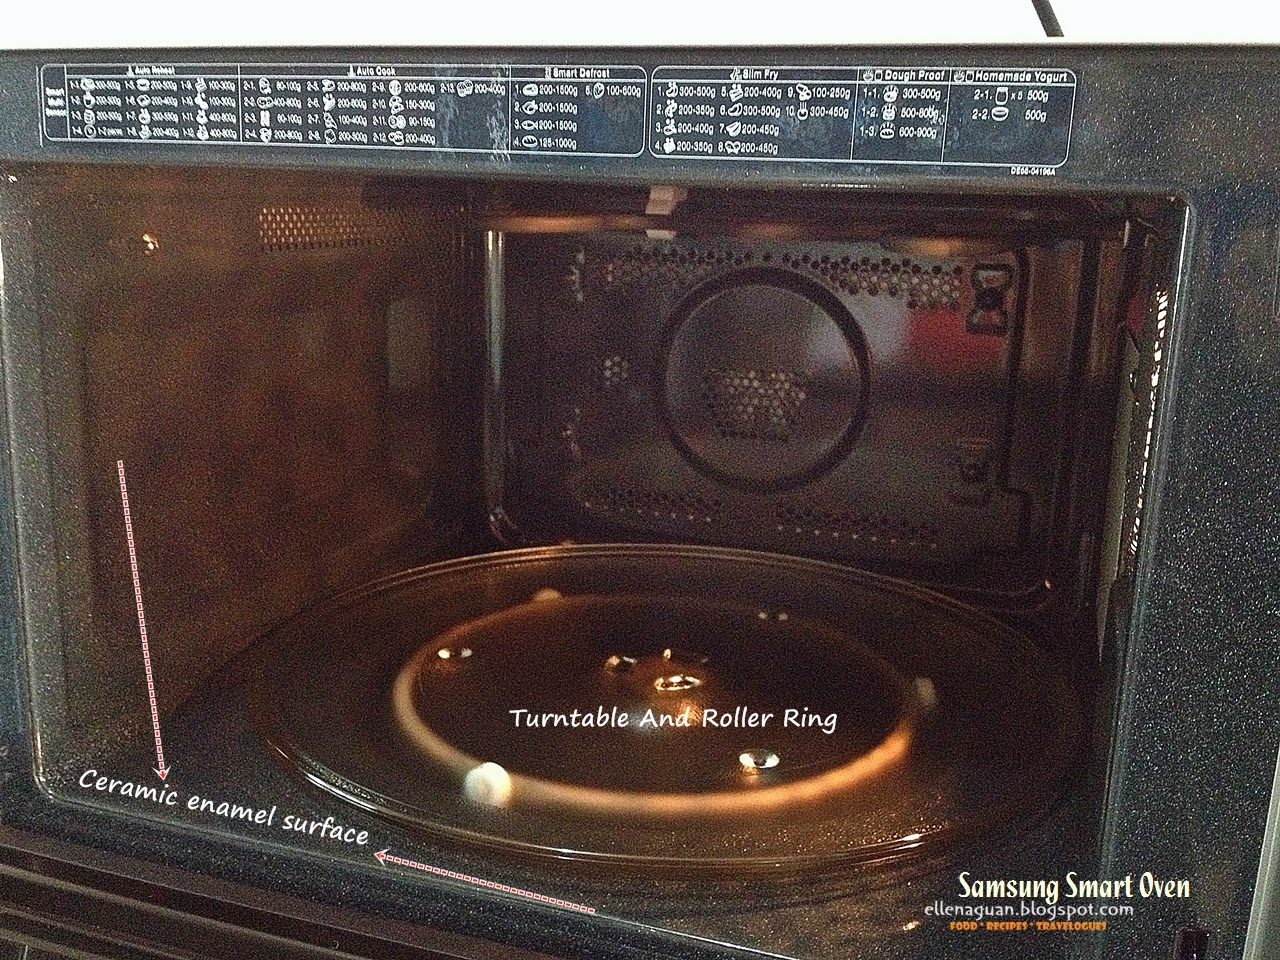 The Interior Of The Samsung Smart Oven Is Designed With Convenience In Mind  Using Ceramic Enamel Surface Which Provides A Durable Interior That Allows